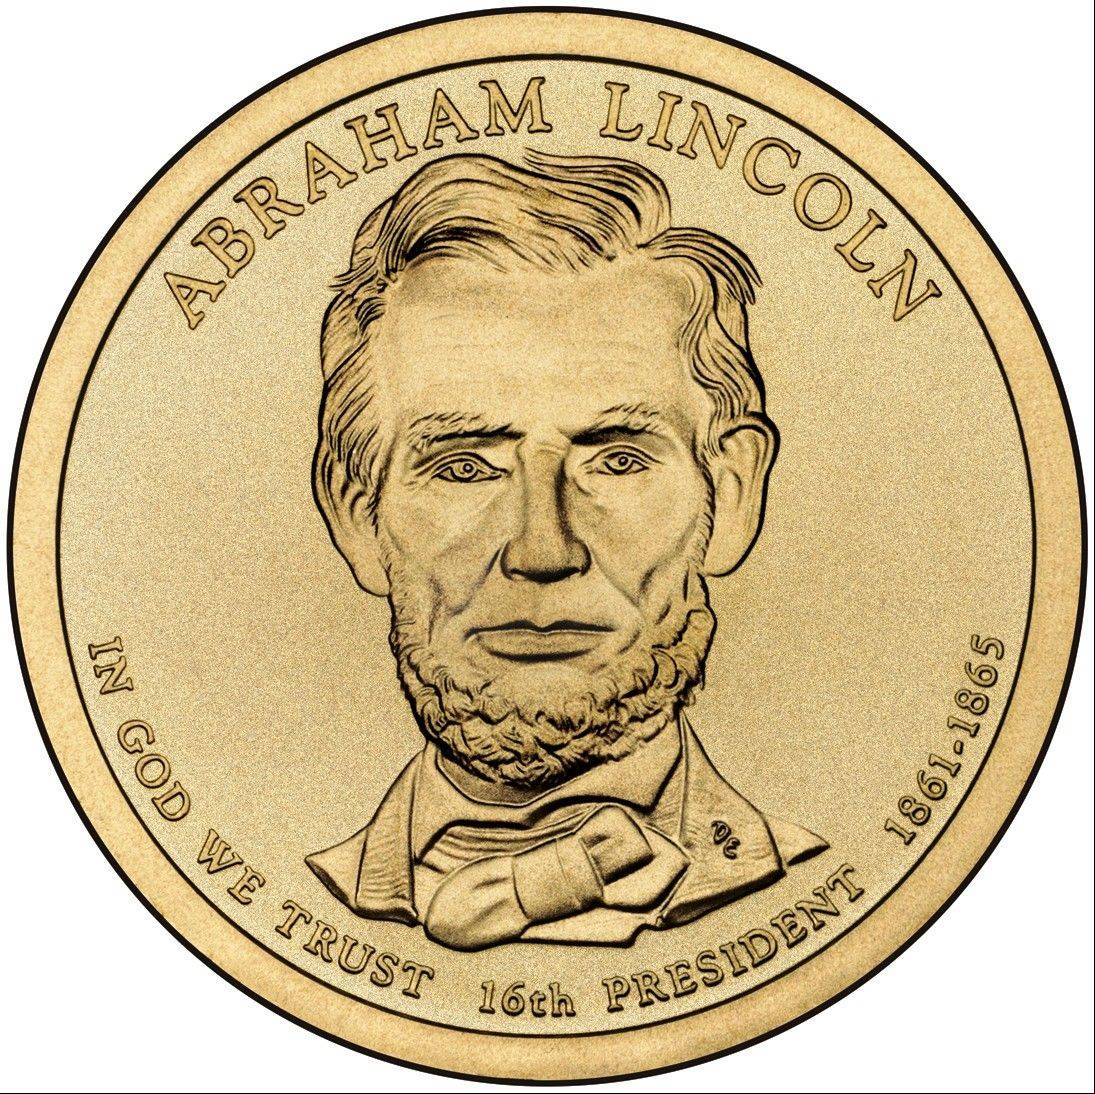 This beautiful Lincoln $1 coin debuted last November, but good luck finding one in circulation.